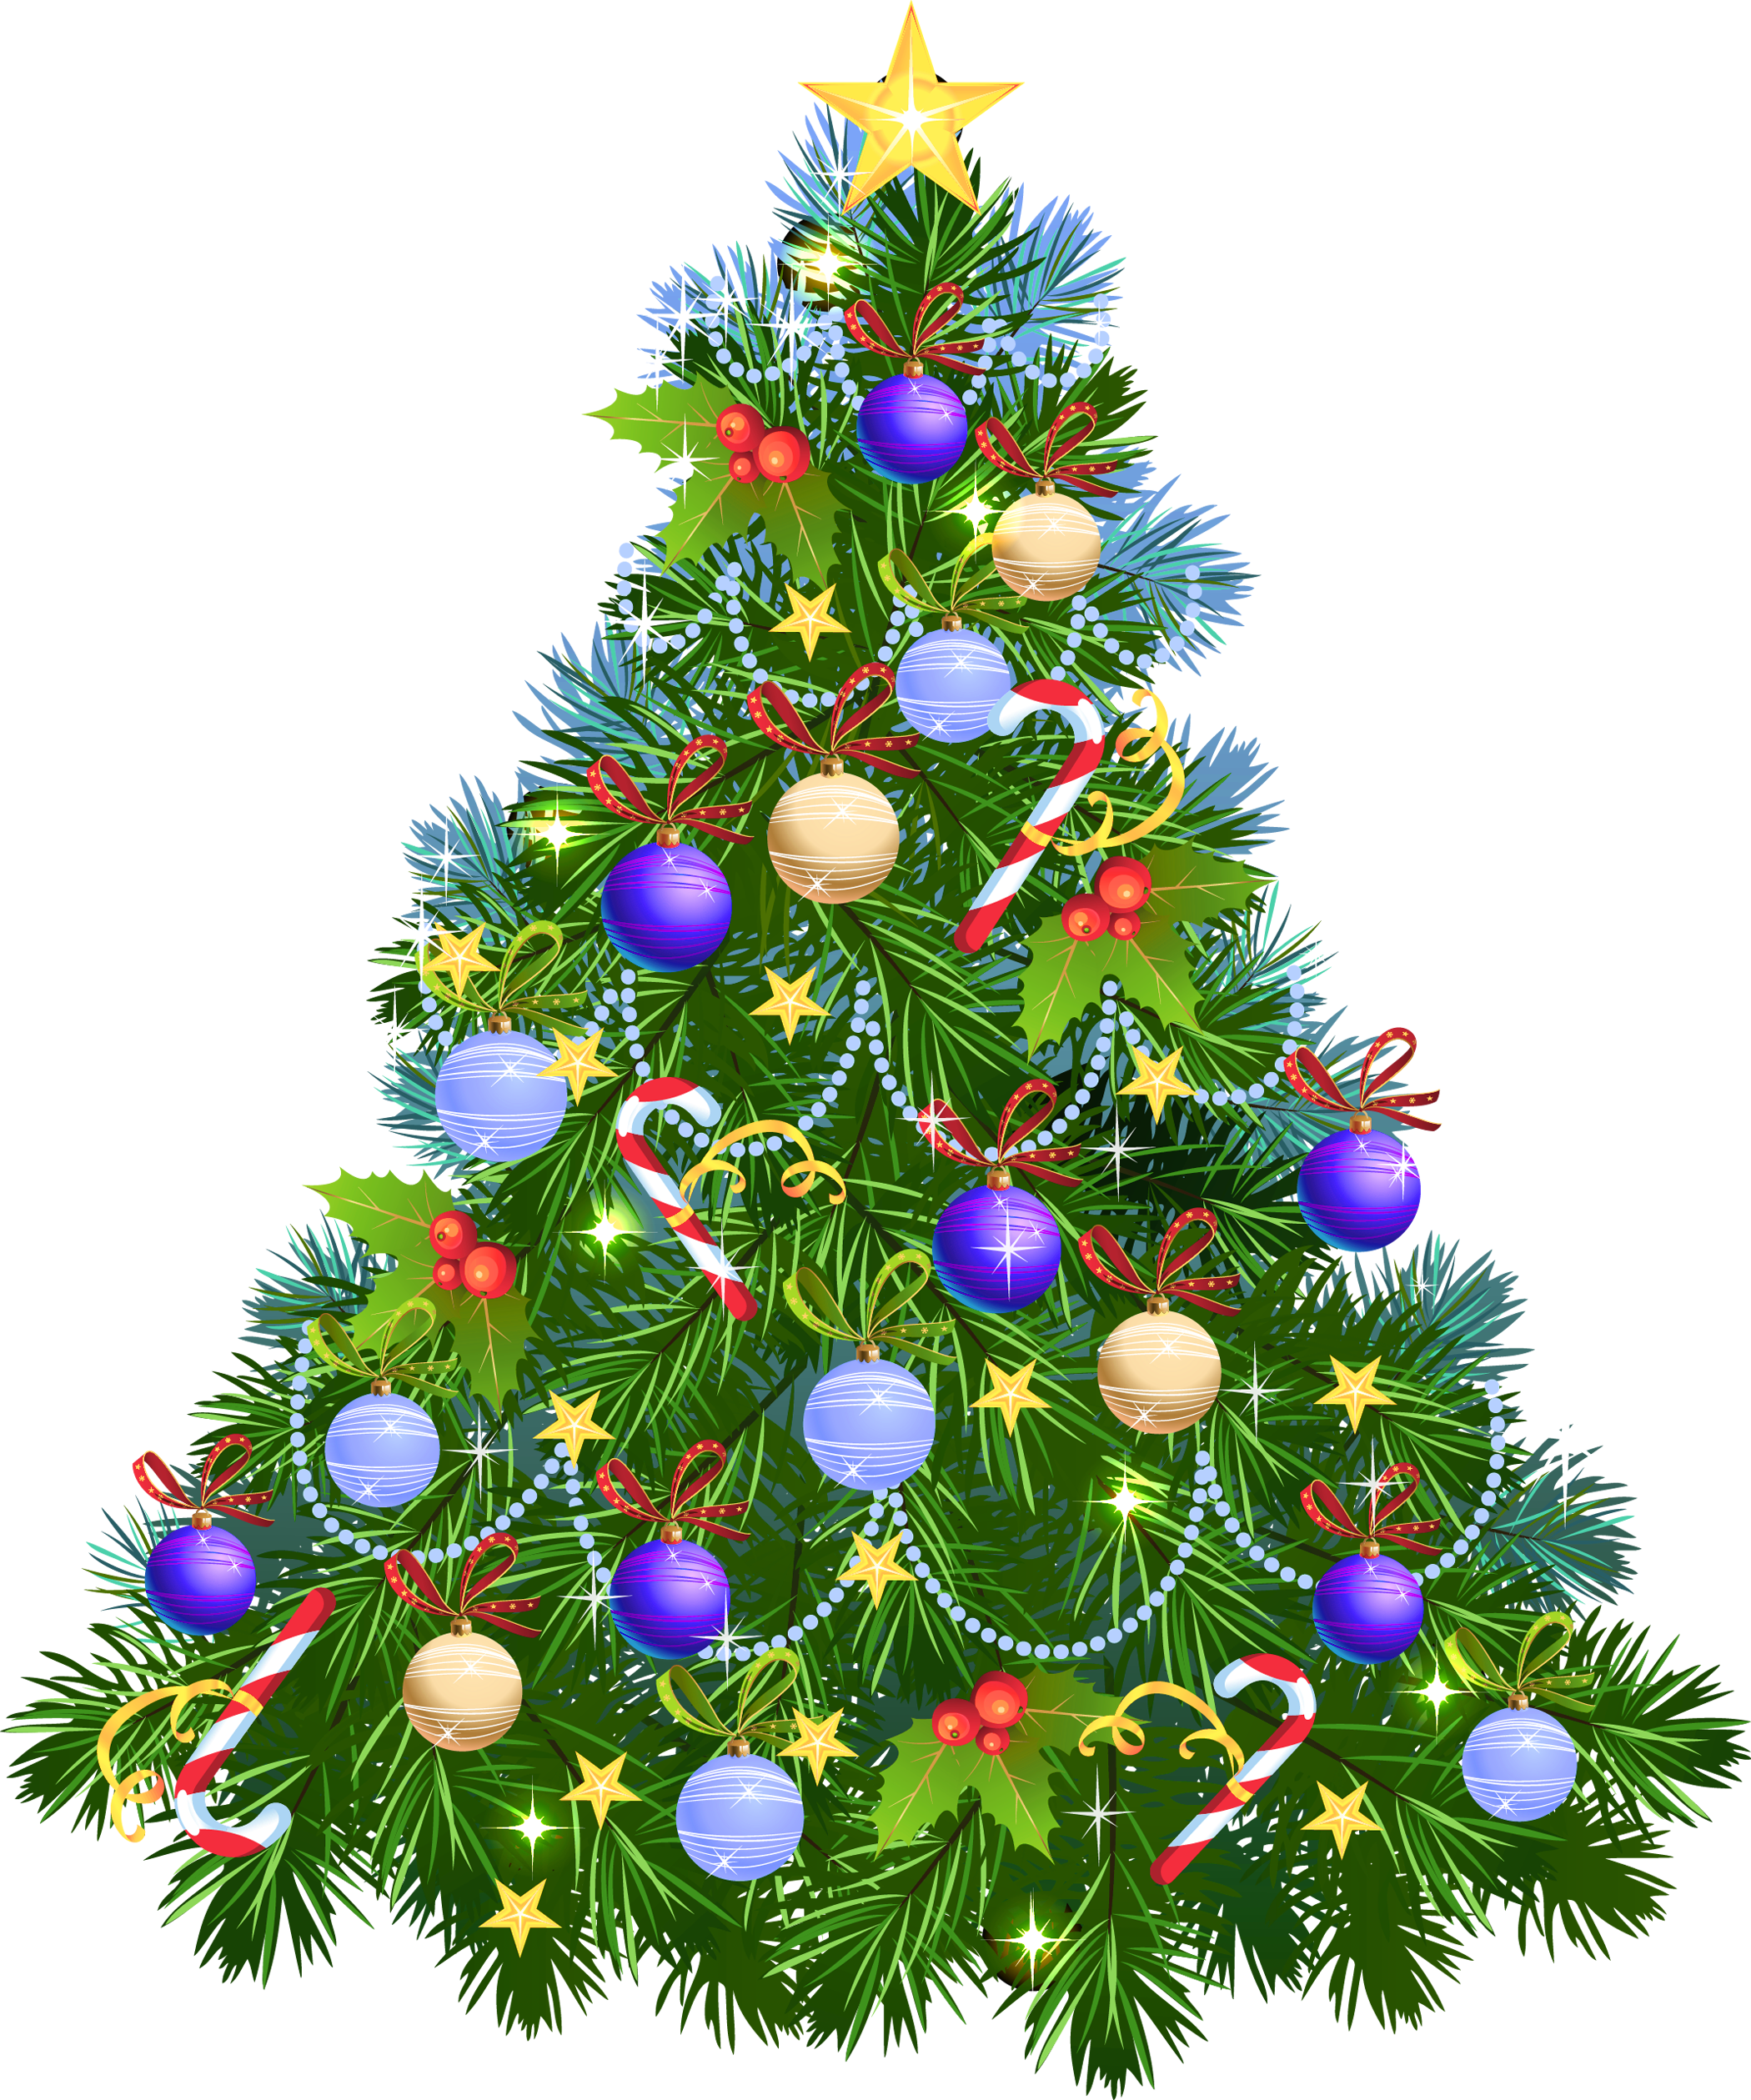 Transparent_PNG_Christmas_Tree_with_Purple_Ornaments